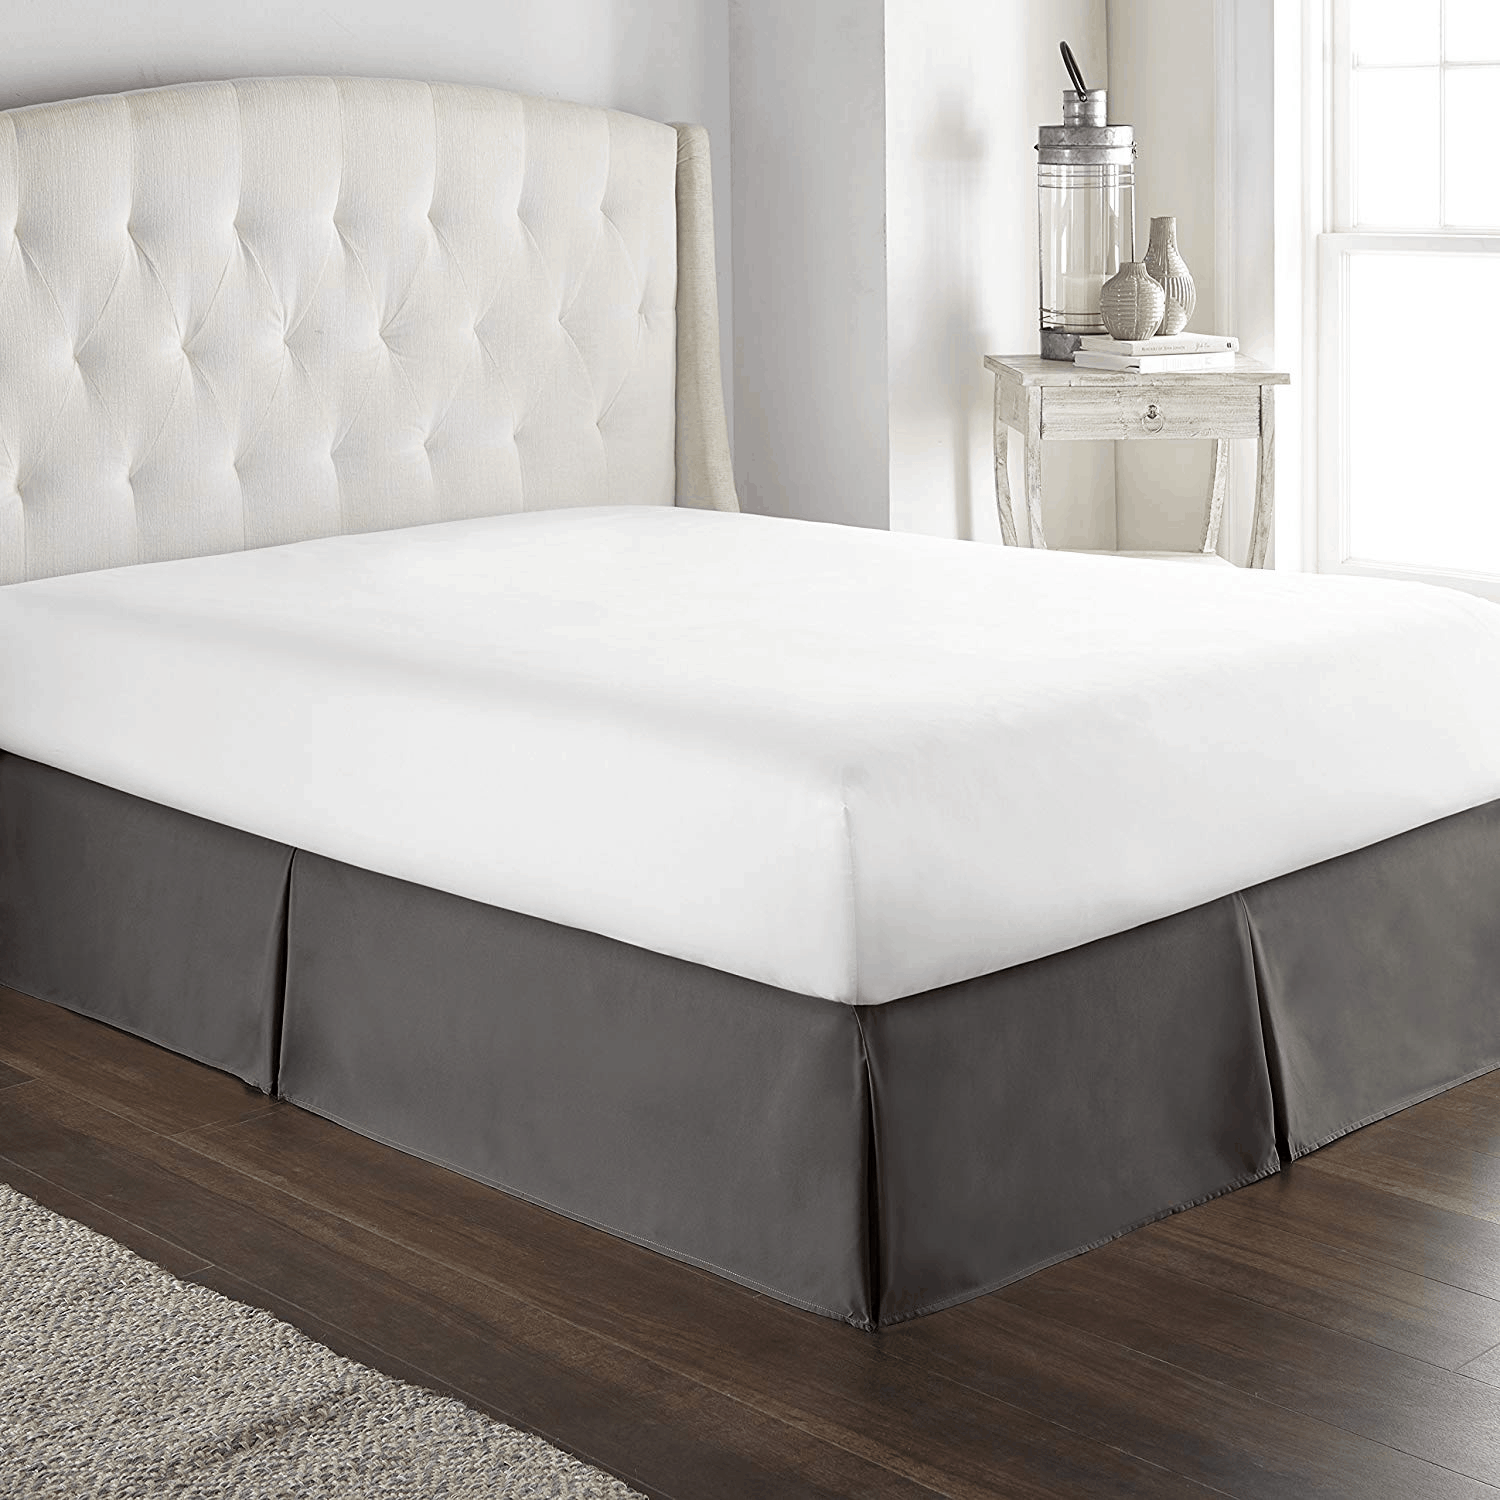 What Is A Platform Bed Skirt How To Put On A Bed Skirt 5 Pgs Q A